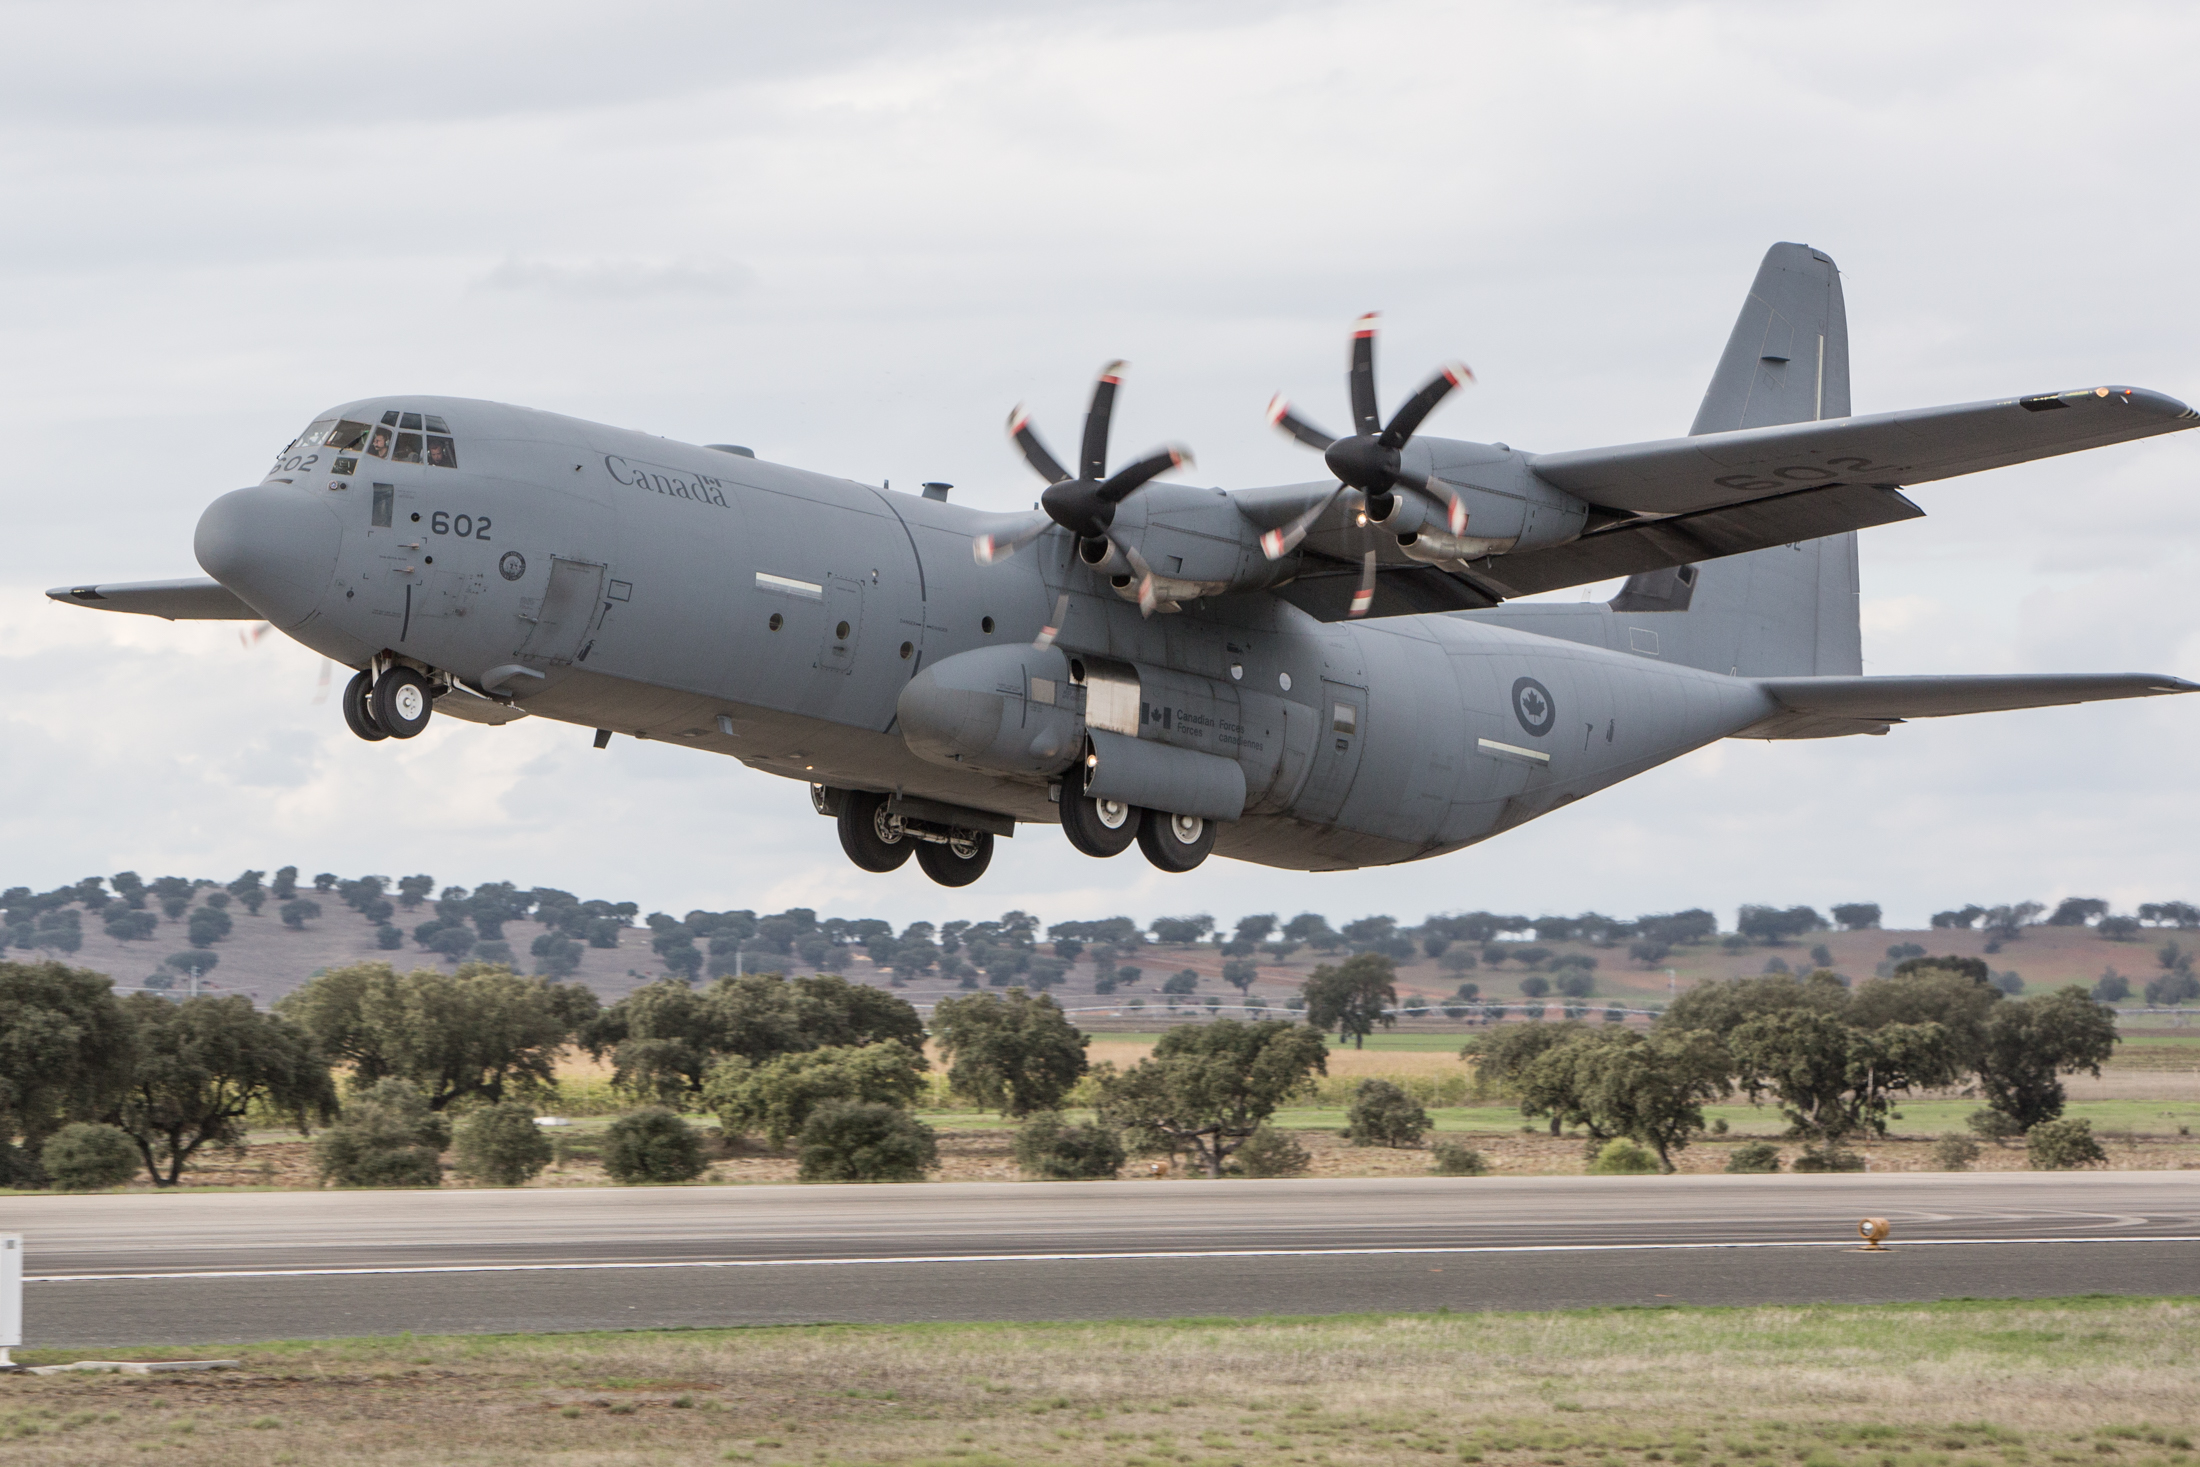 A Canadian Air Force Lockheed C-130 Hercules Aircraft